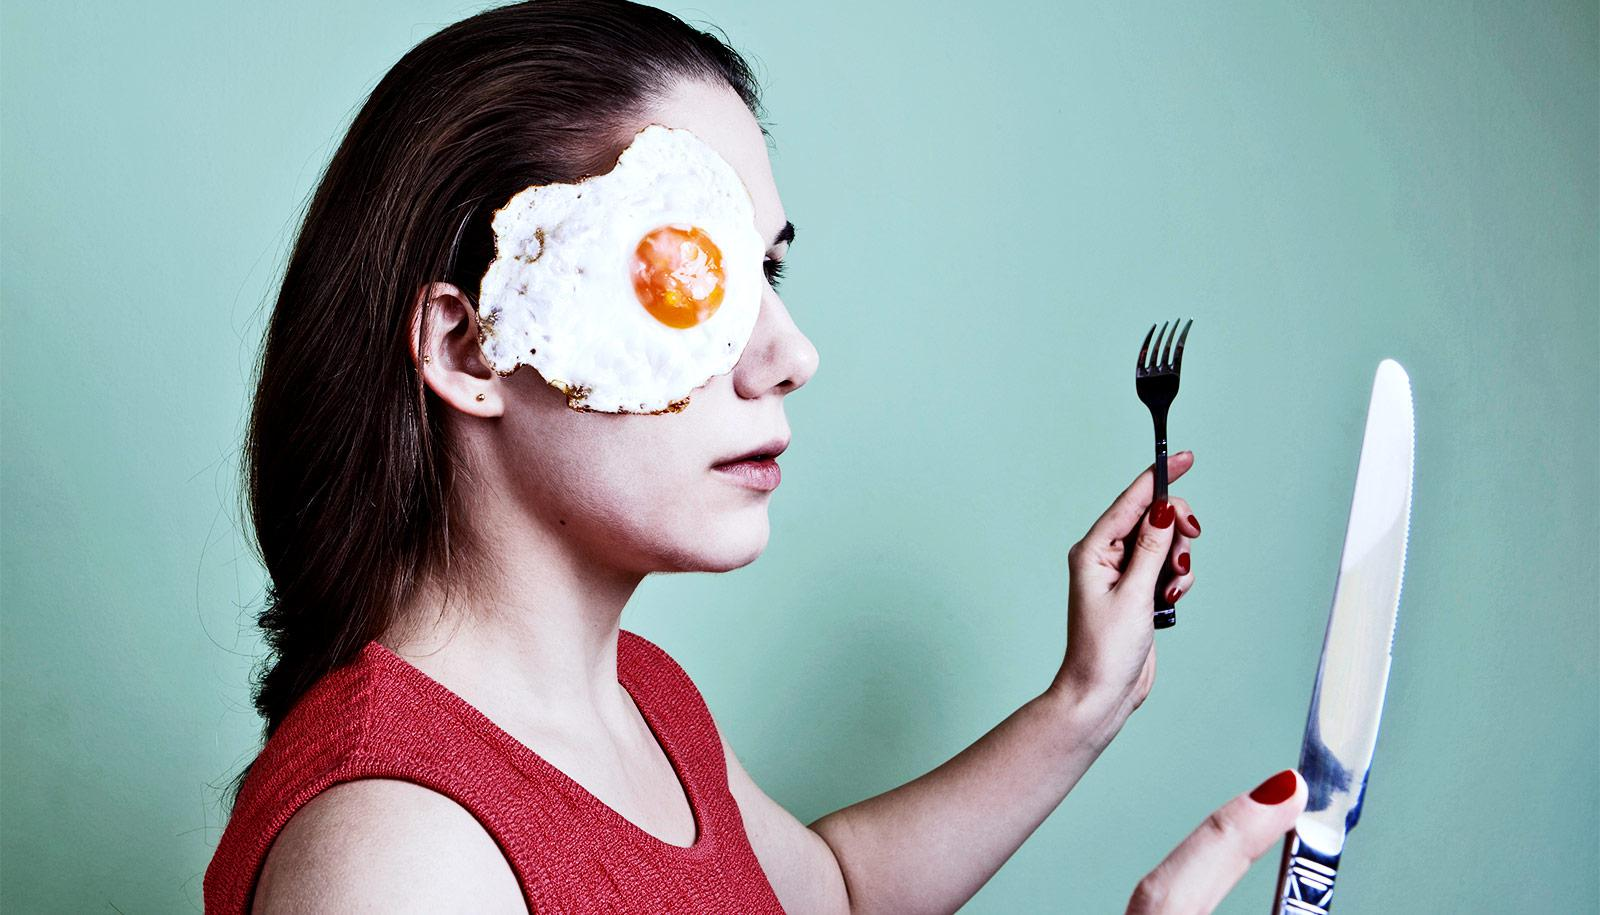 A young woman in red holds a fork and knife up while a fried egg hangs on her face